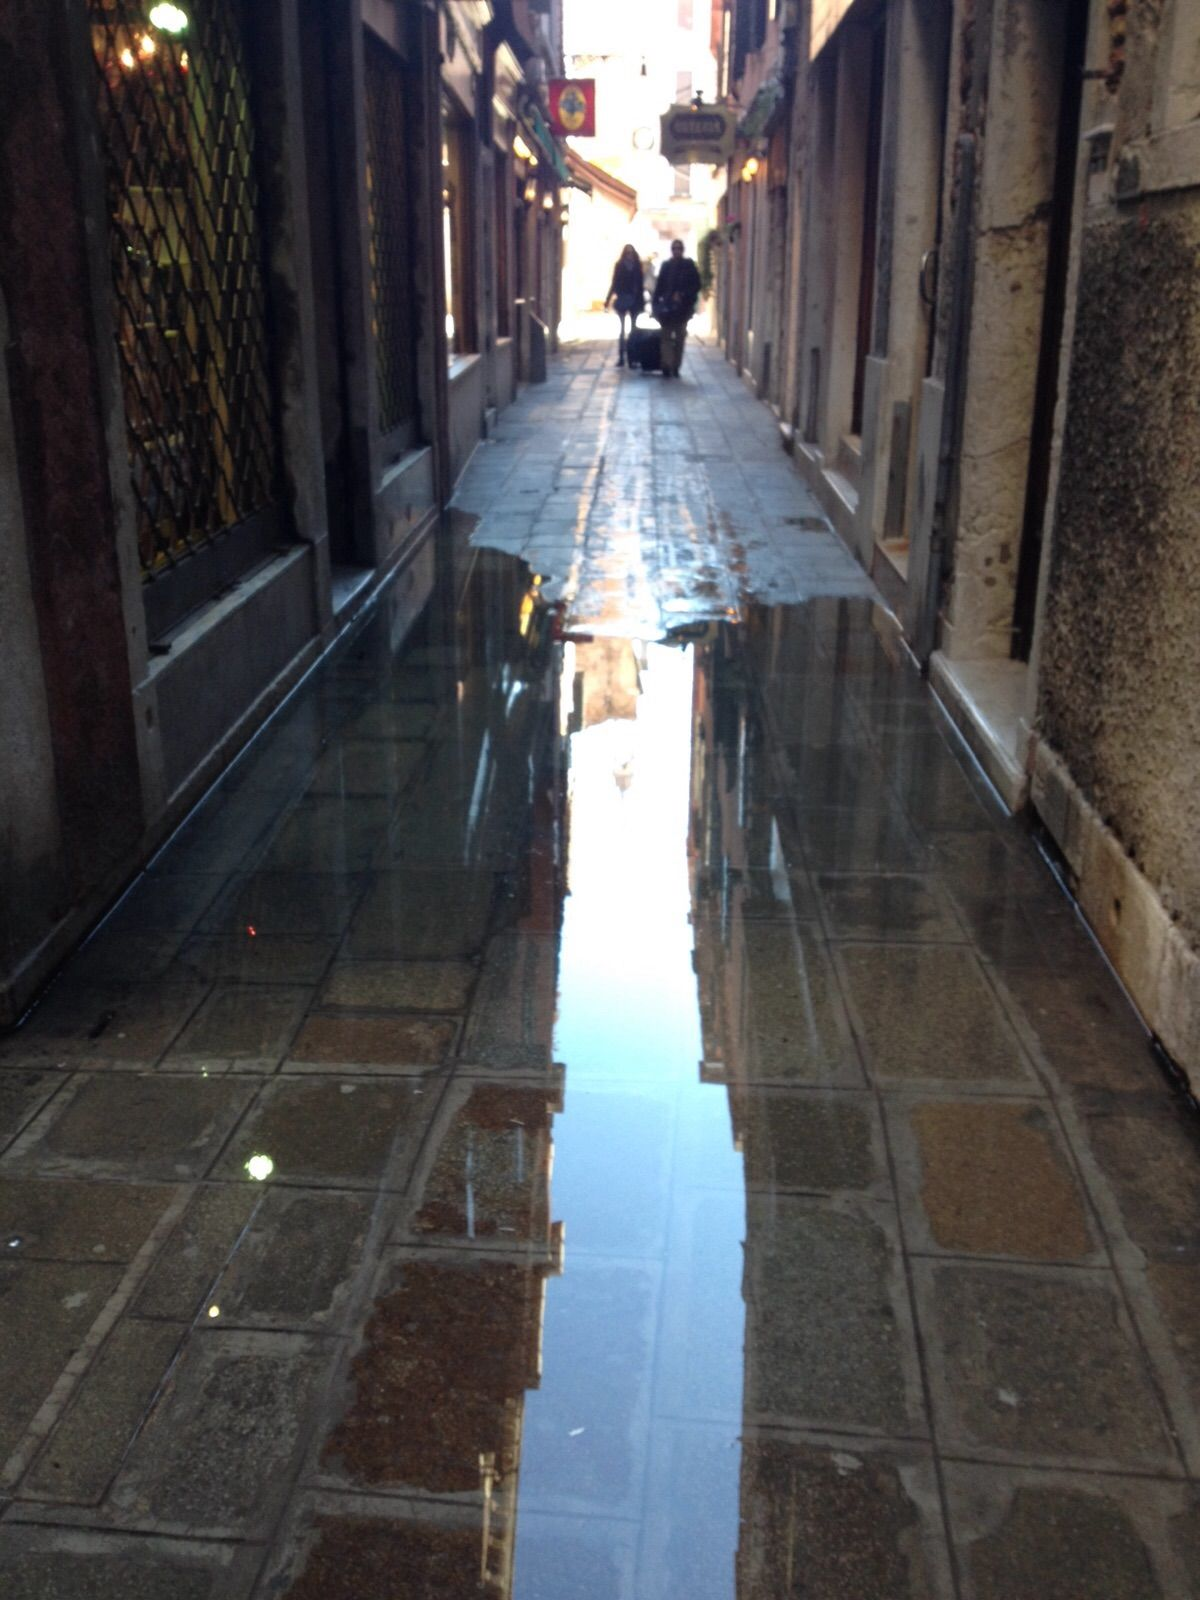 Wateroverlast in Venetië (27 november 2015). ©2015 Sofia J. Lirb.